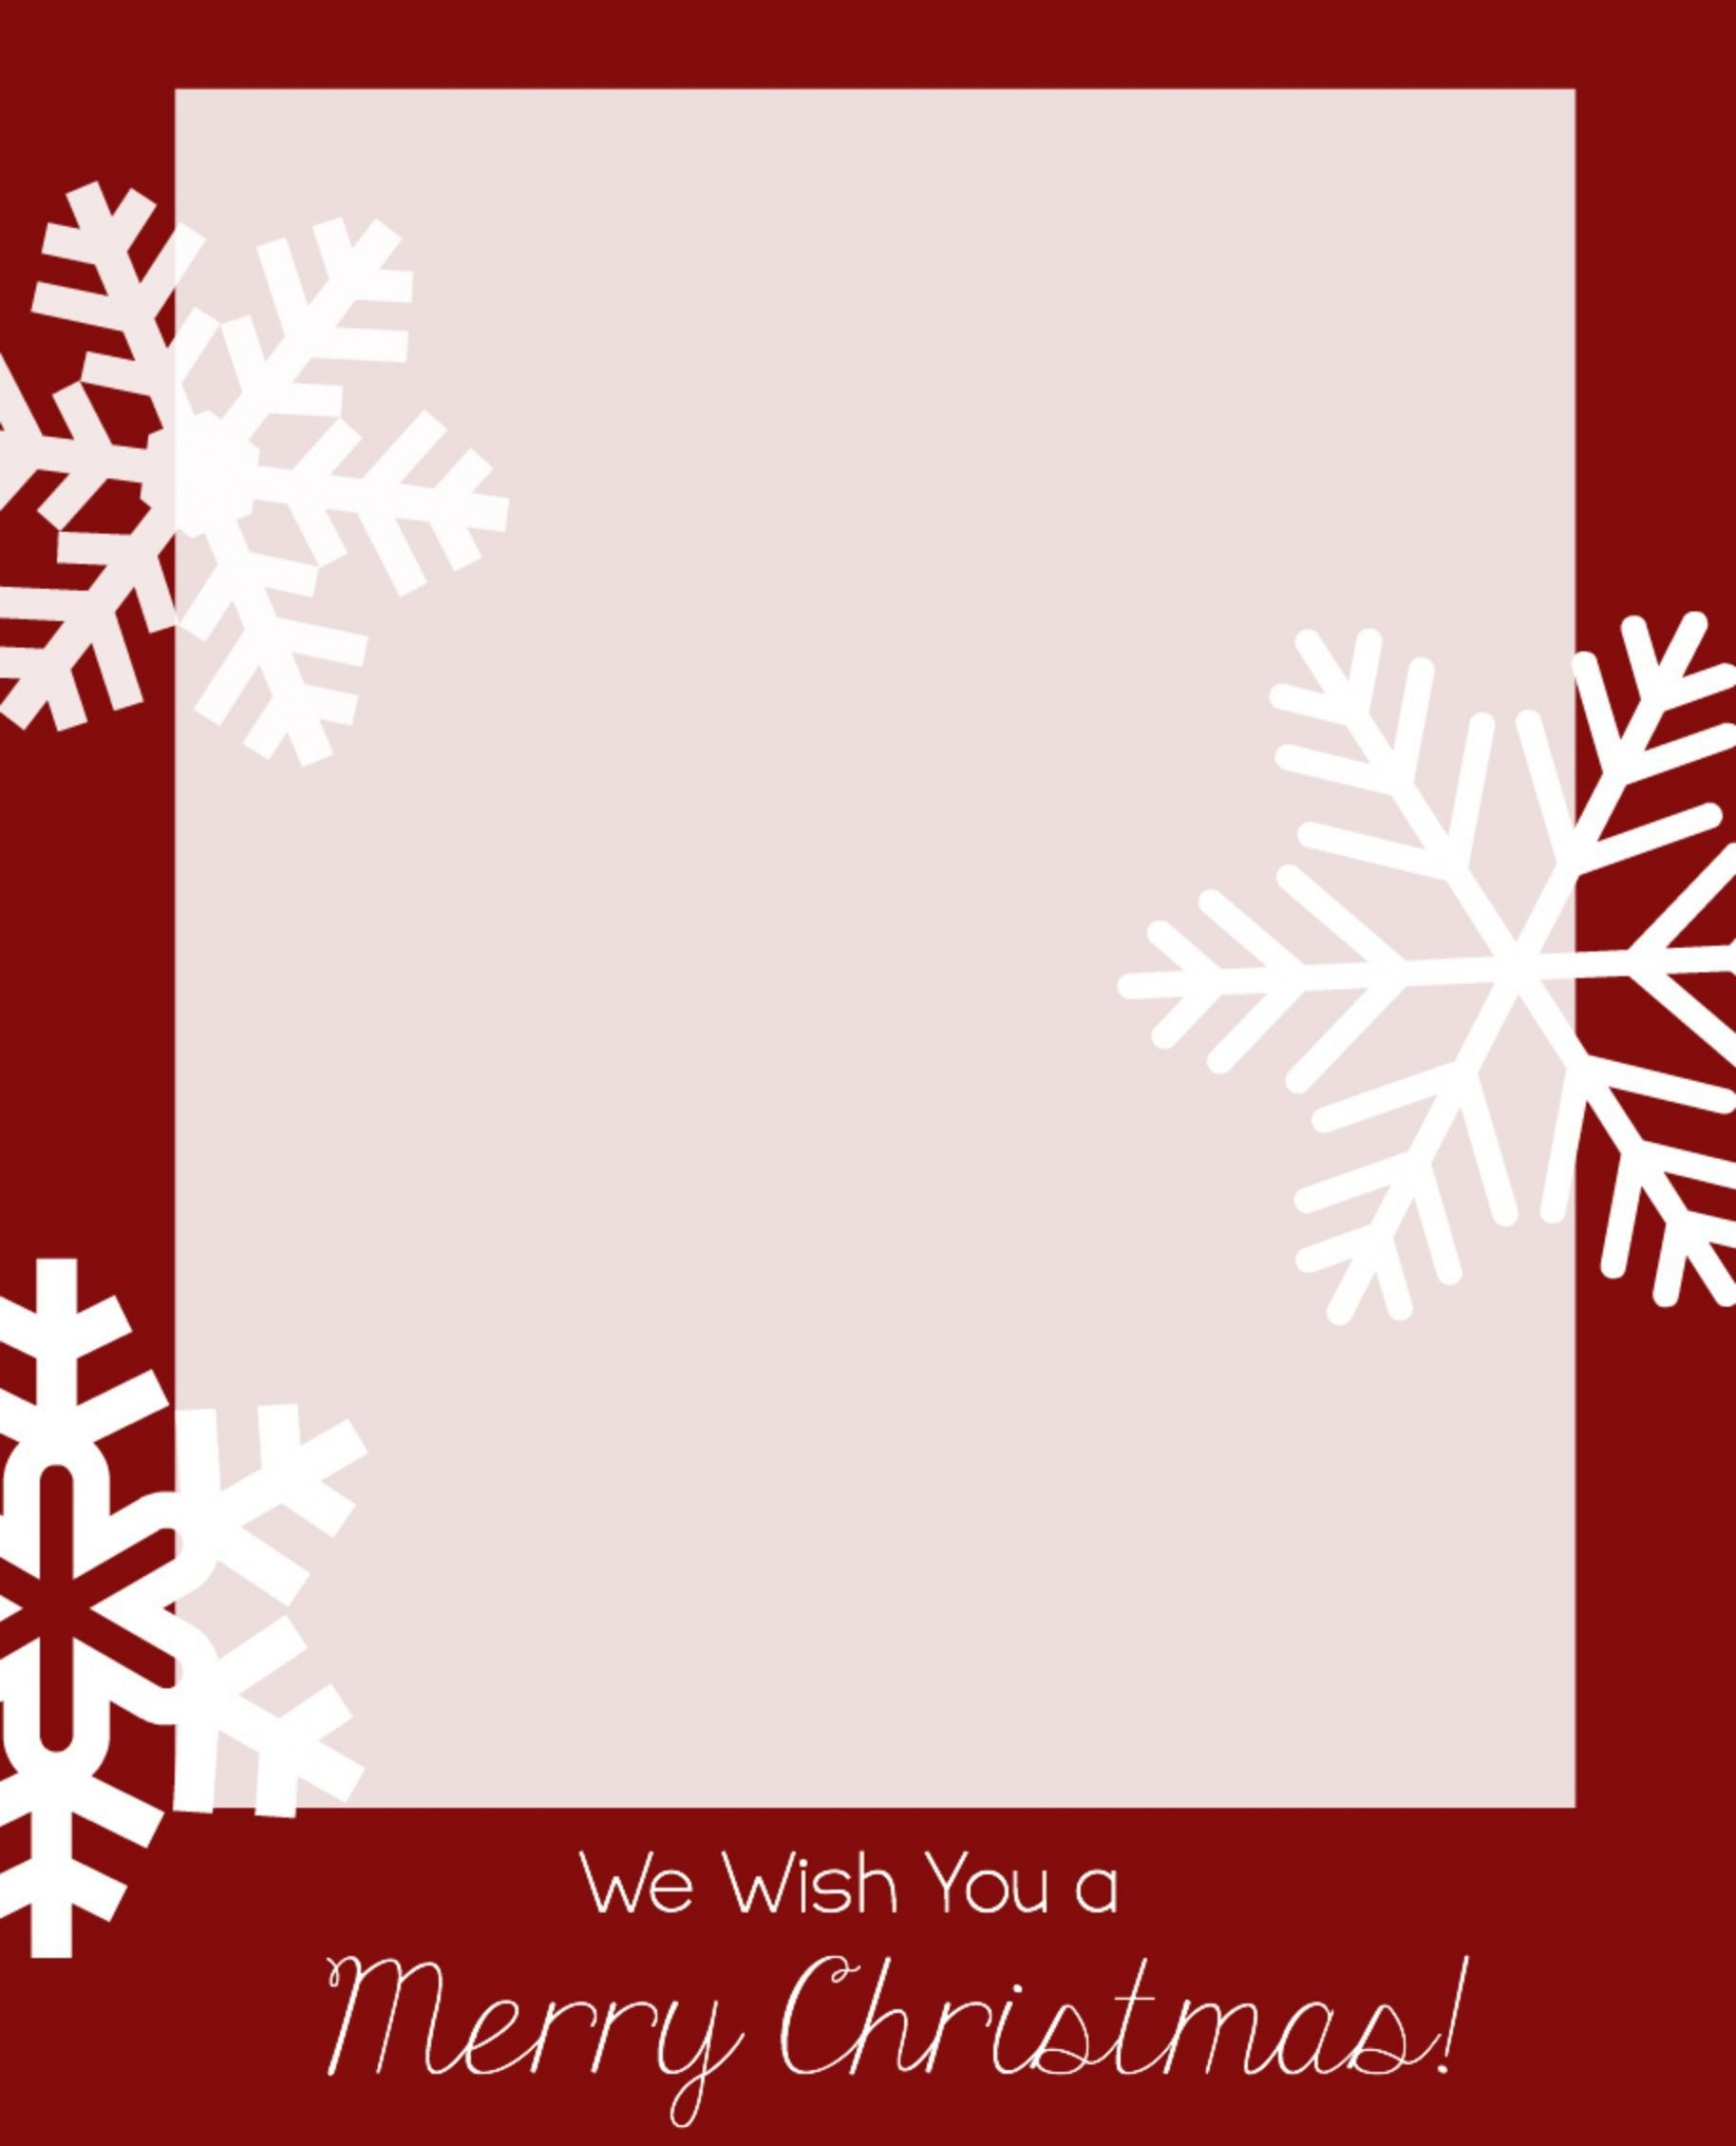 001 Stunning Free Photo Christma Card Template Inspiration  Templates For Photoshop Online1920